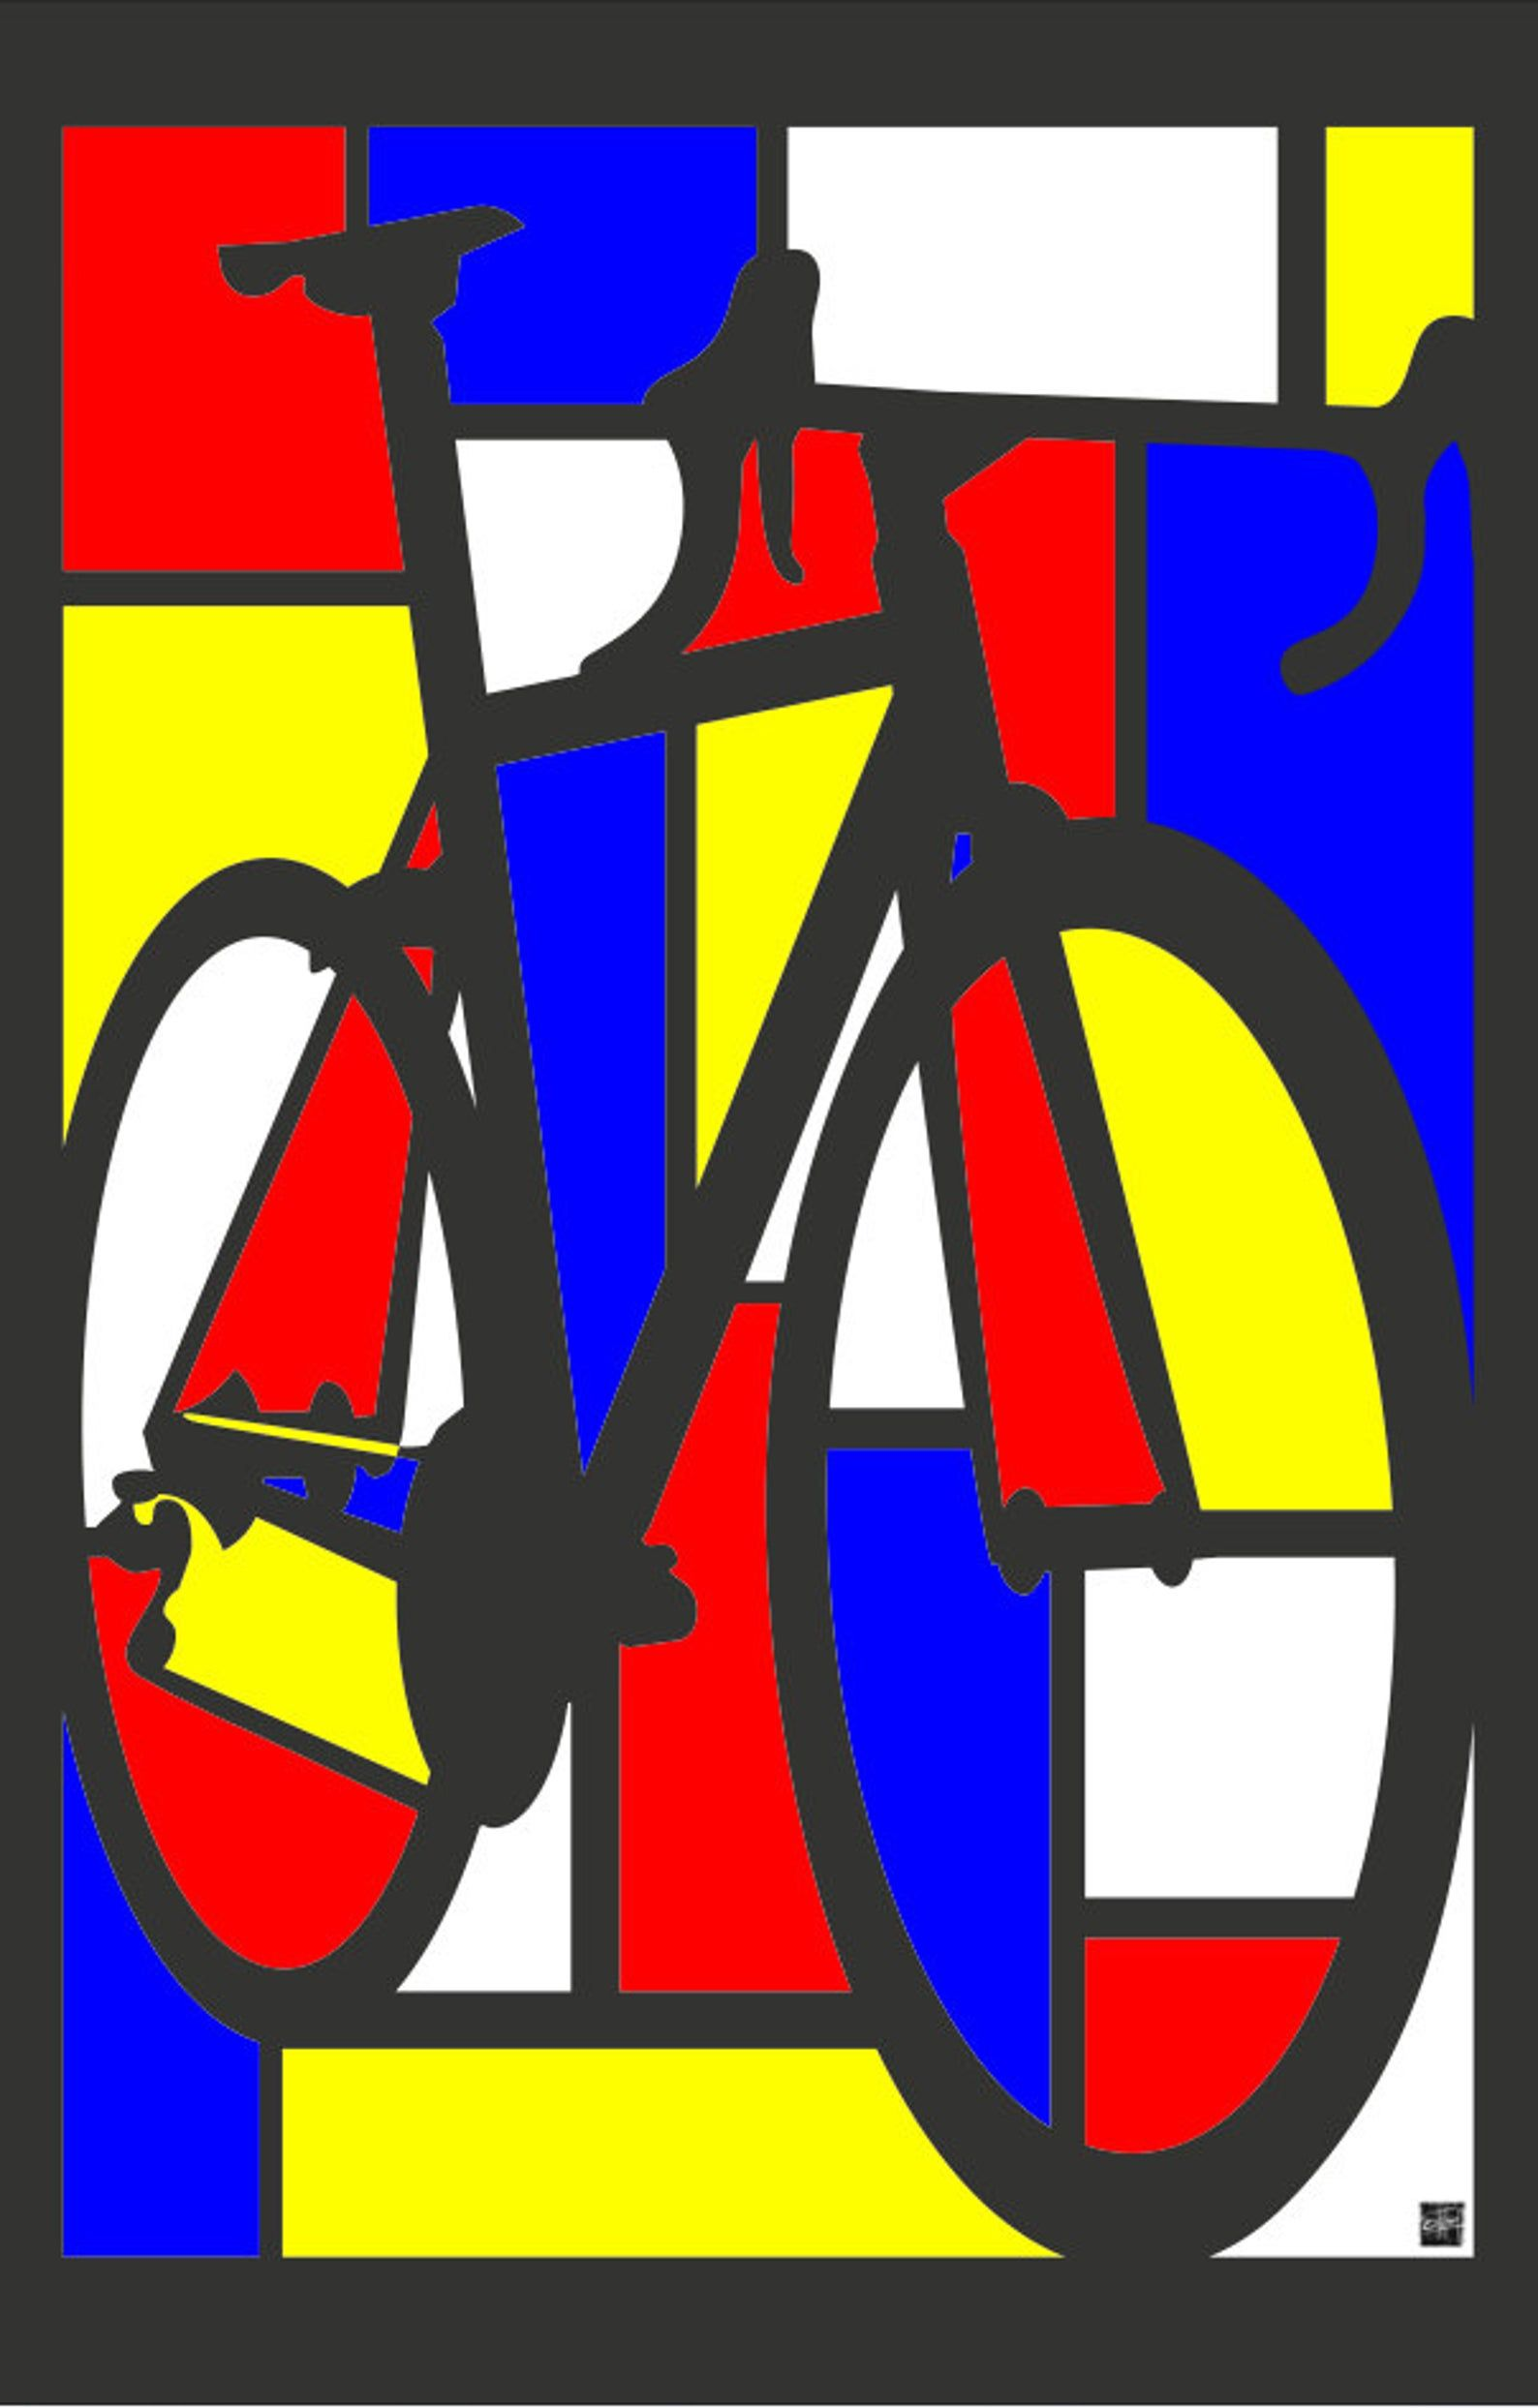 Mondrian Road Bike Art Illustration Cartel Impresion 11x17 Etsy In 2020 Bike Poster Bike Art Bike Ride